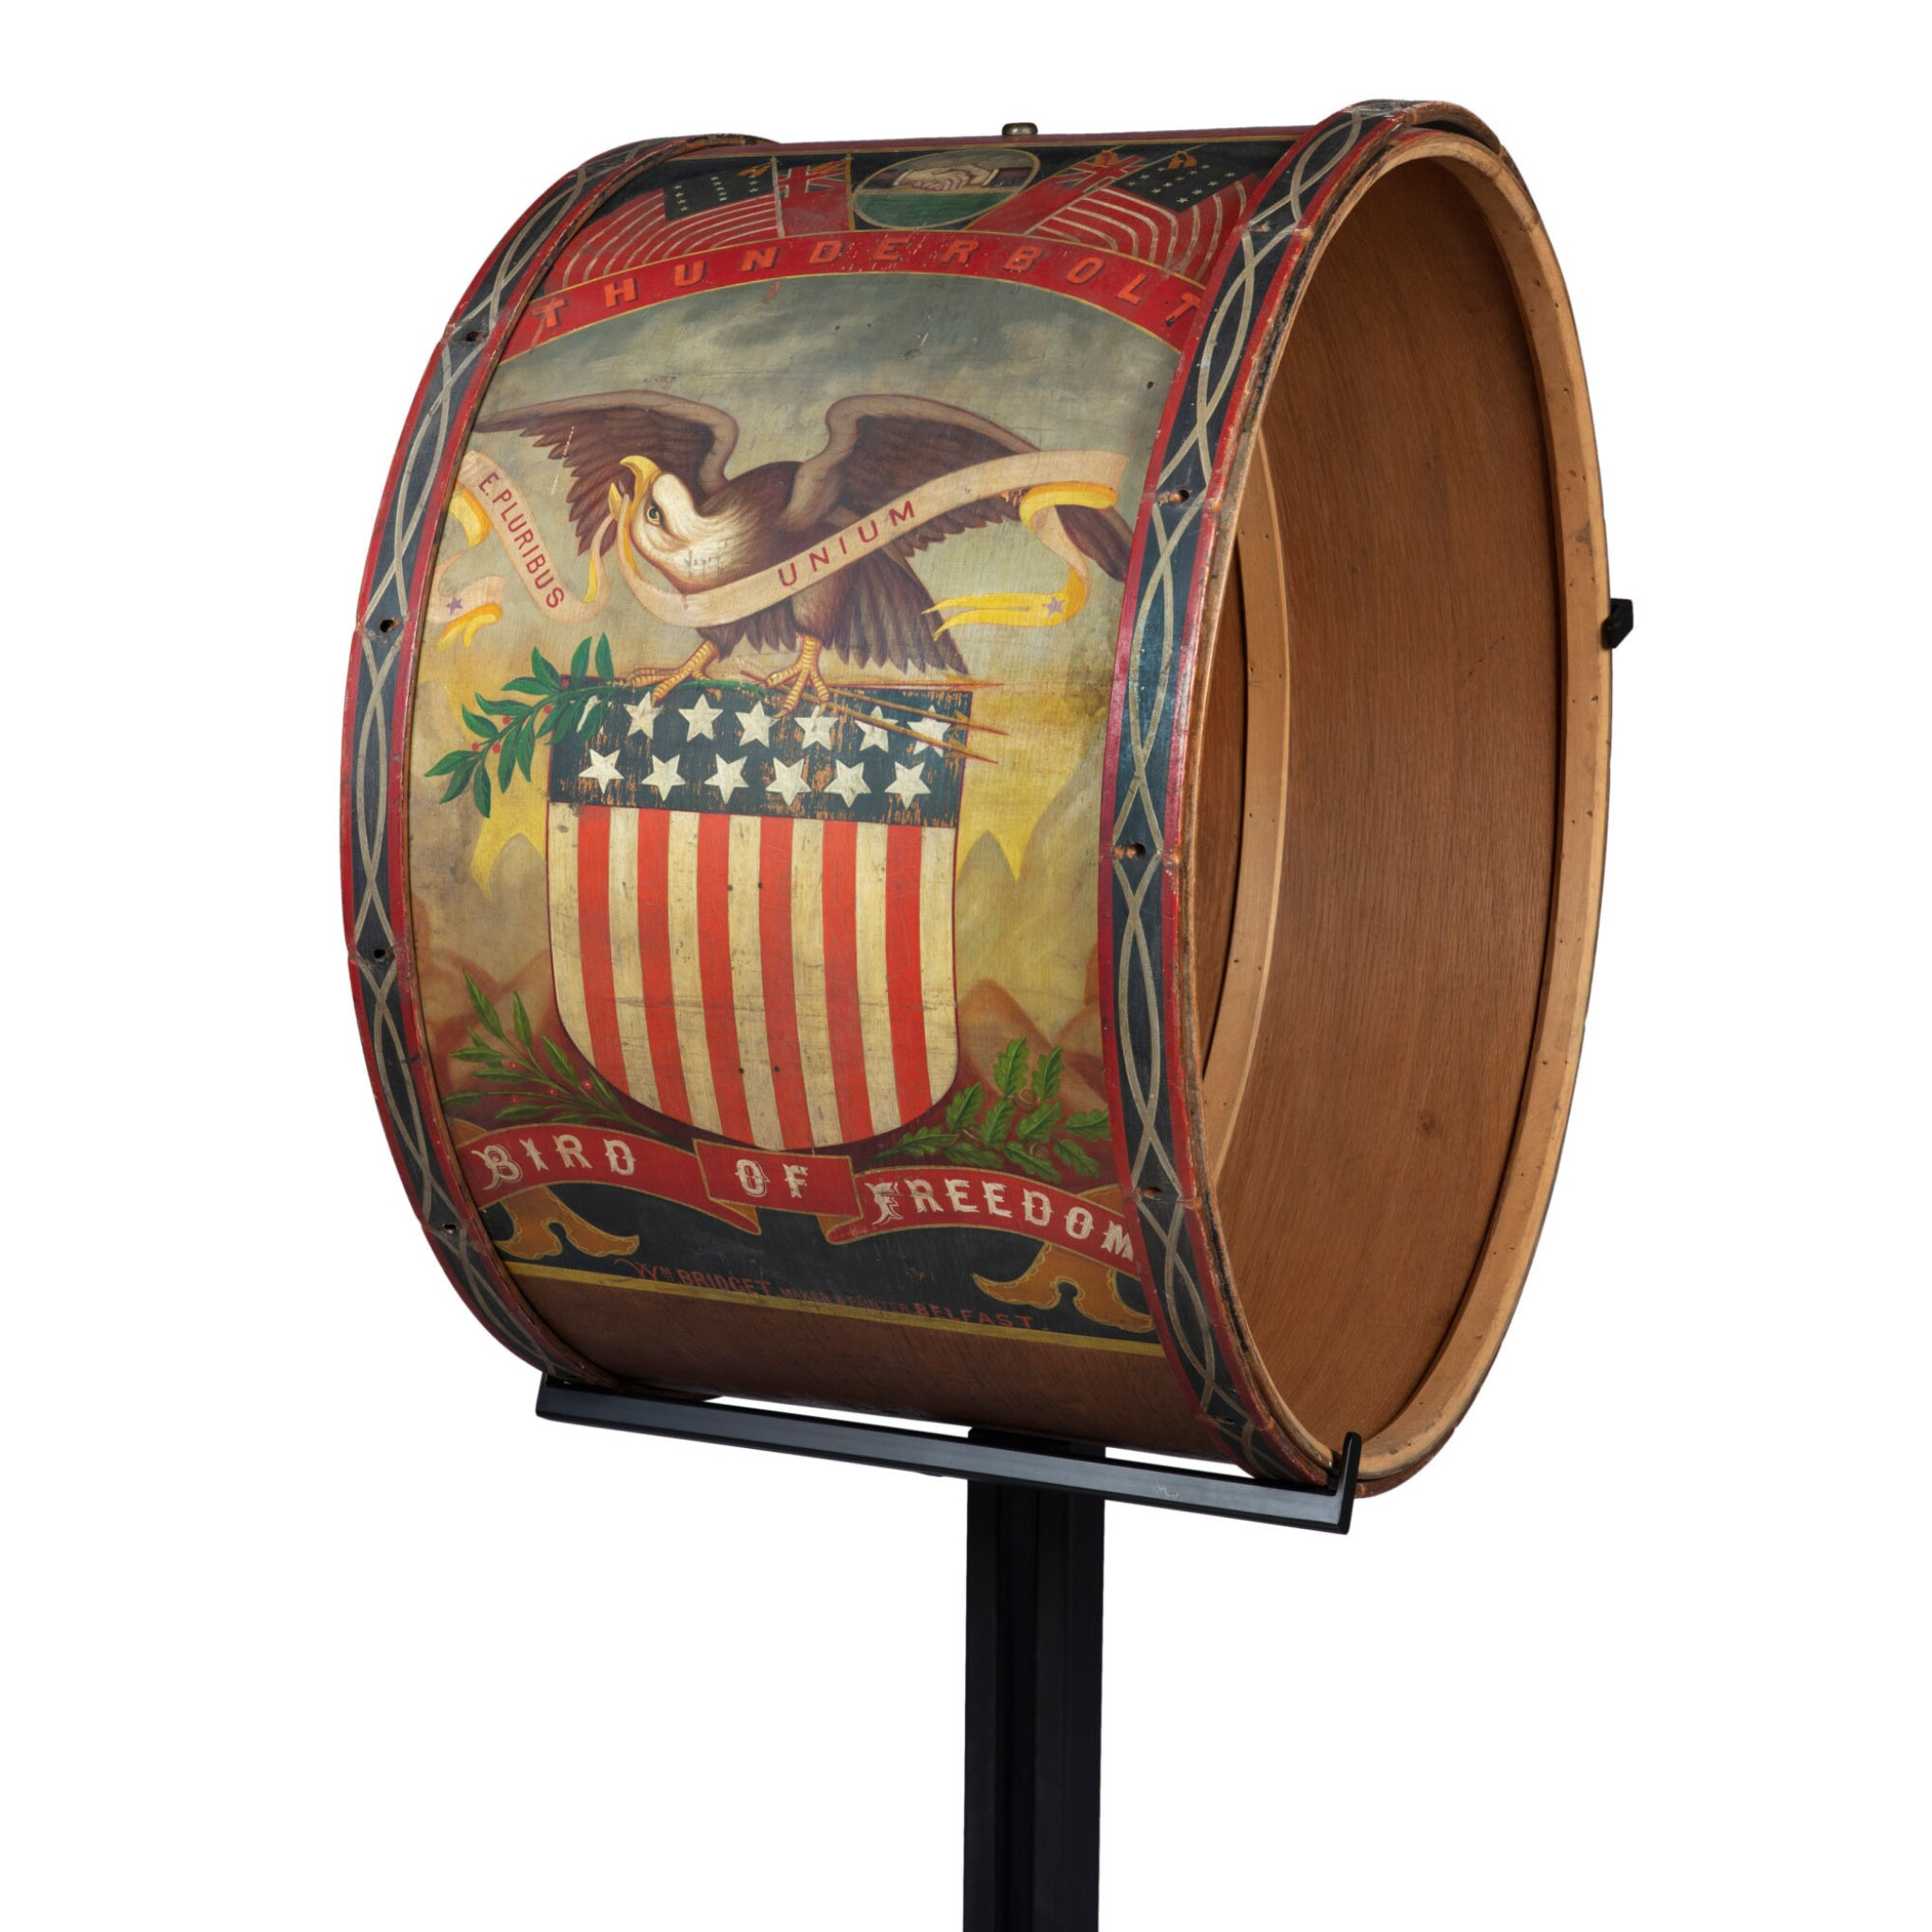 EXCEPTIONAL POLYCHROME PAINT-DECORATED WOODEN CIVIL WAR PARADE DRUM, WILLIAM BRIDGET, BELFAST, MAINE, CIRCA 1860